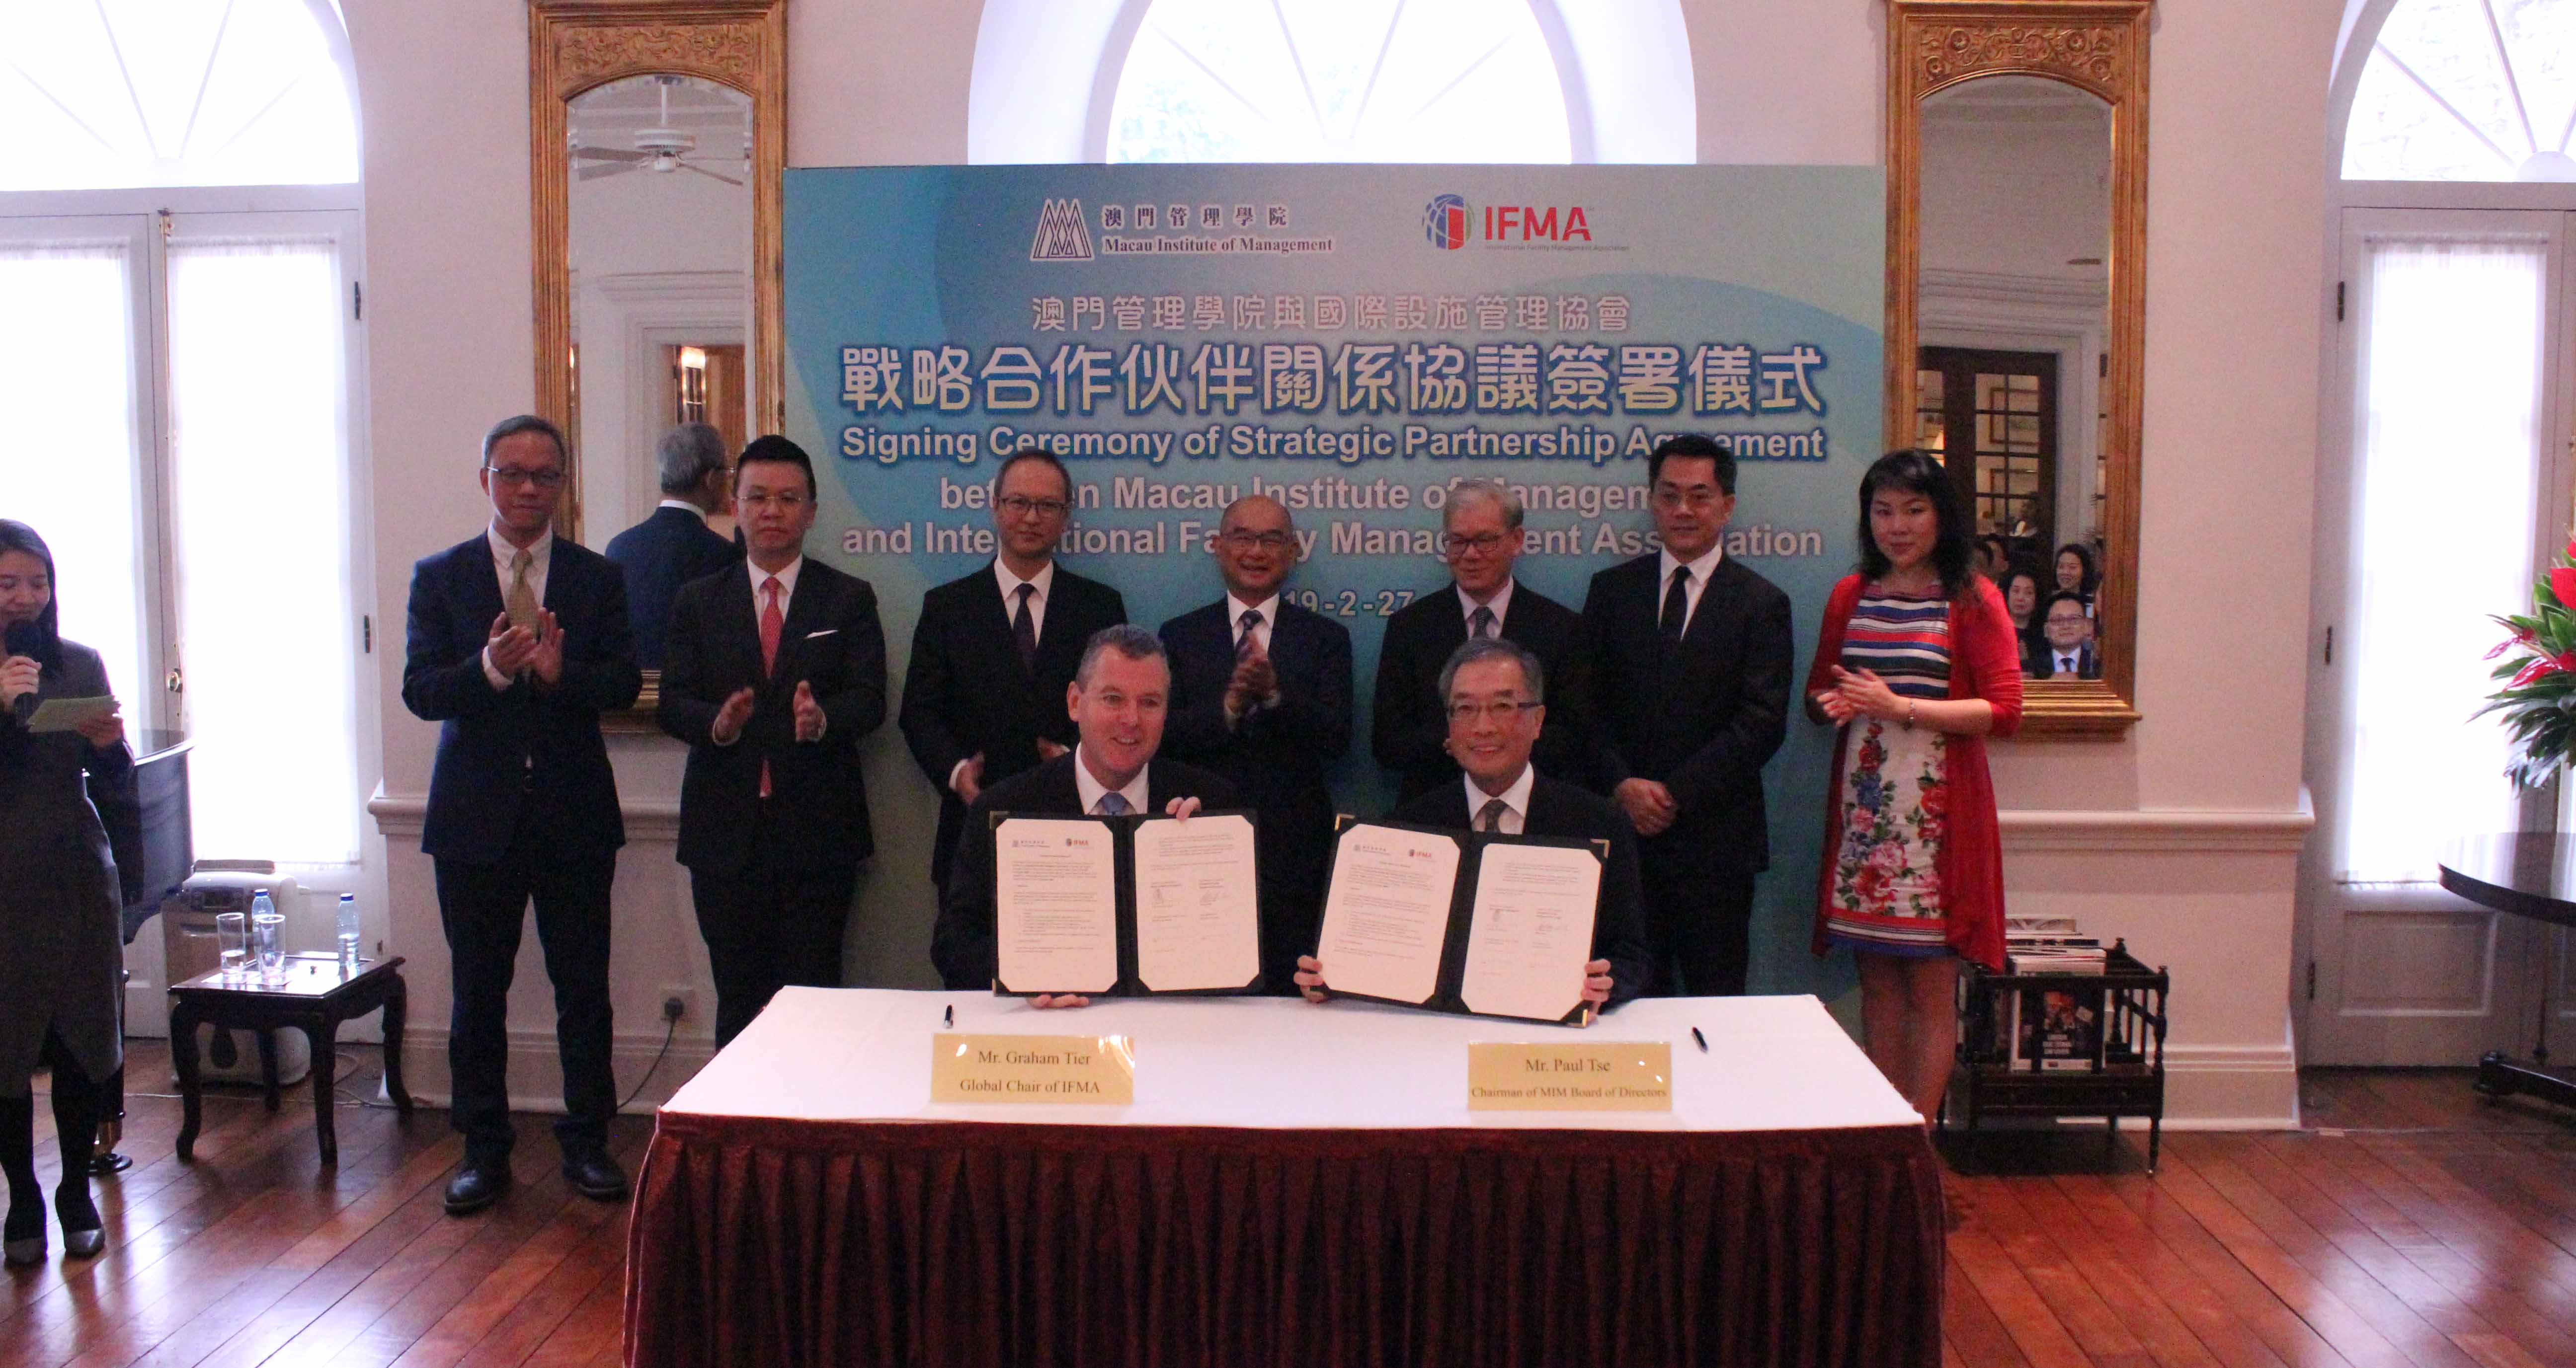 IFMA signs Strategic Partnership Agreement with Macau Institute of Management